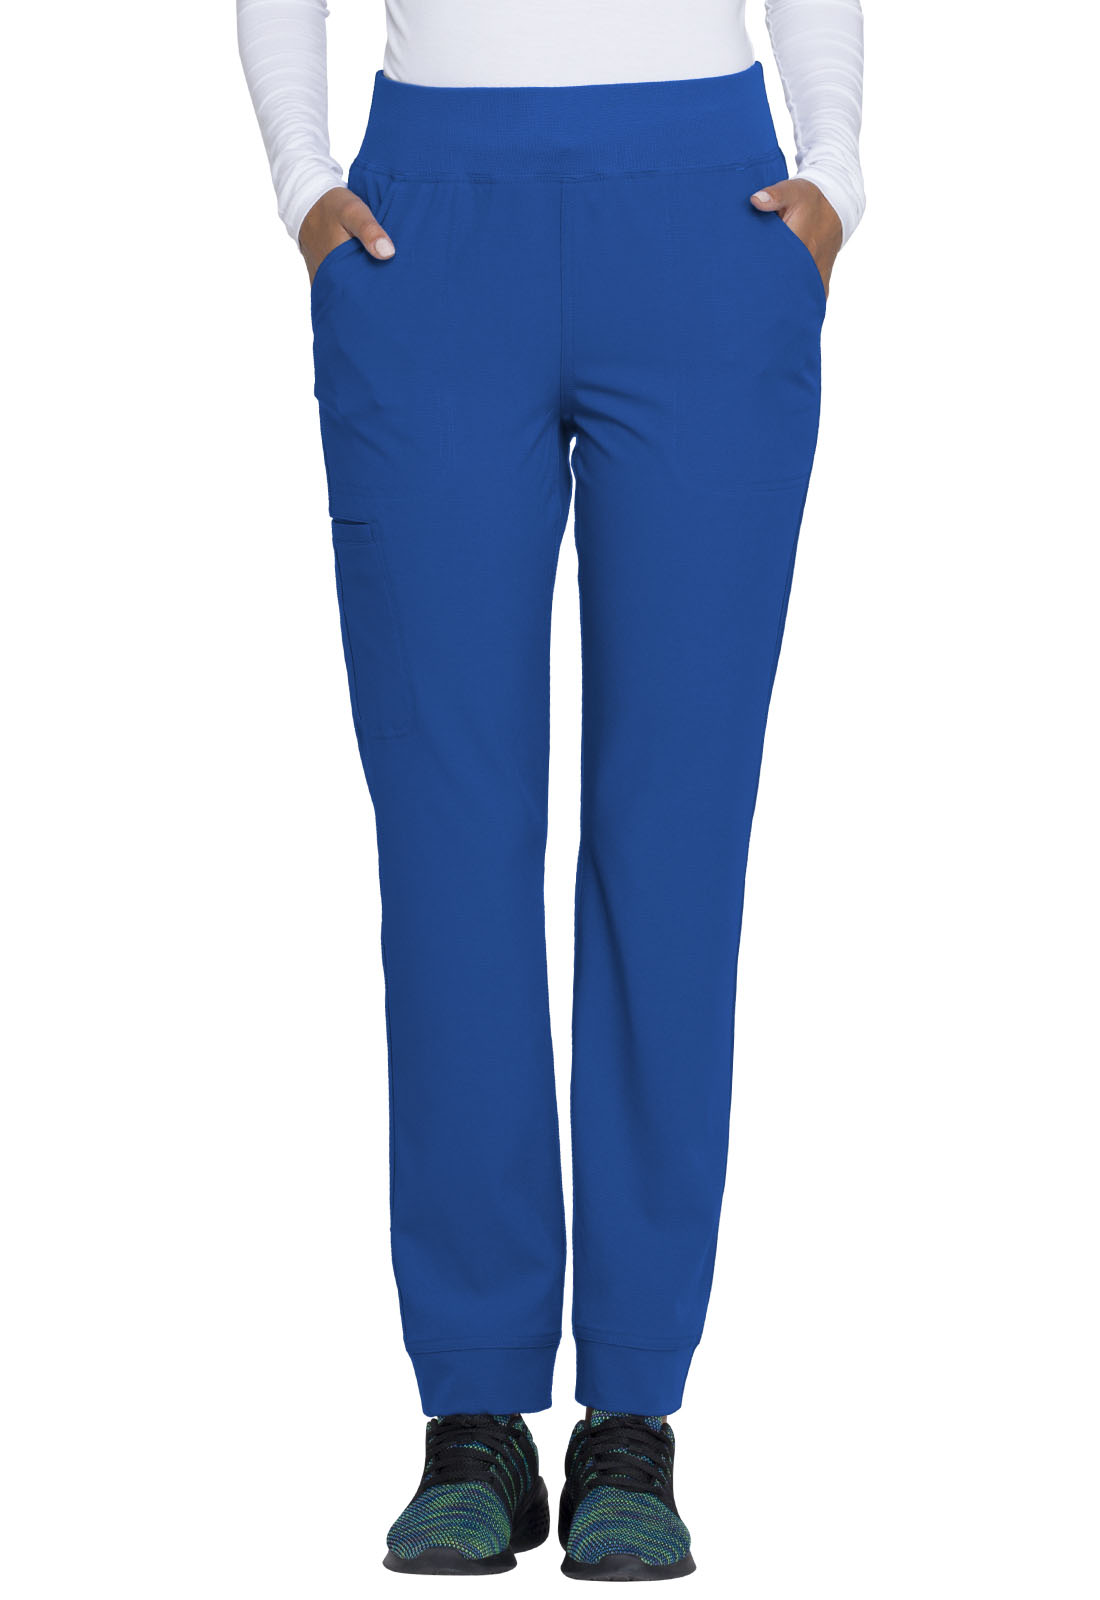 6cd0d0ab03a Break on Through Natural Rise Tapered Leg Pant in Royal HS070-ROYH ...